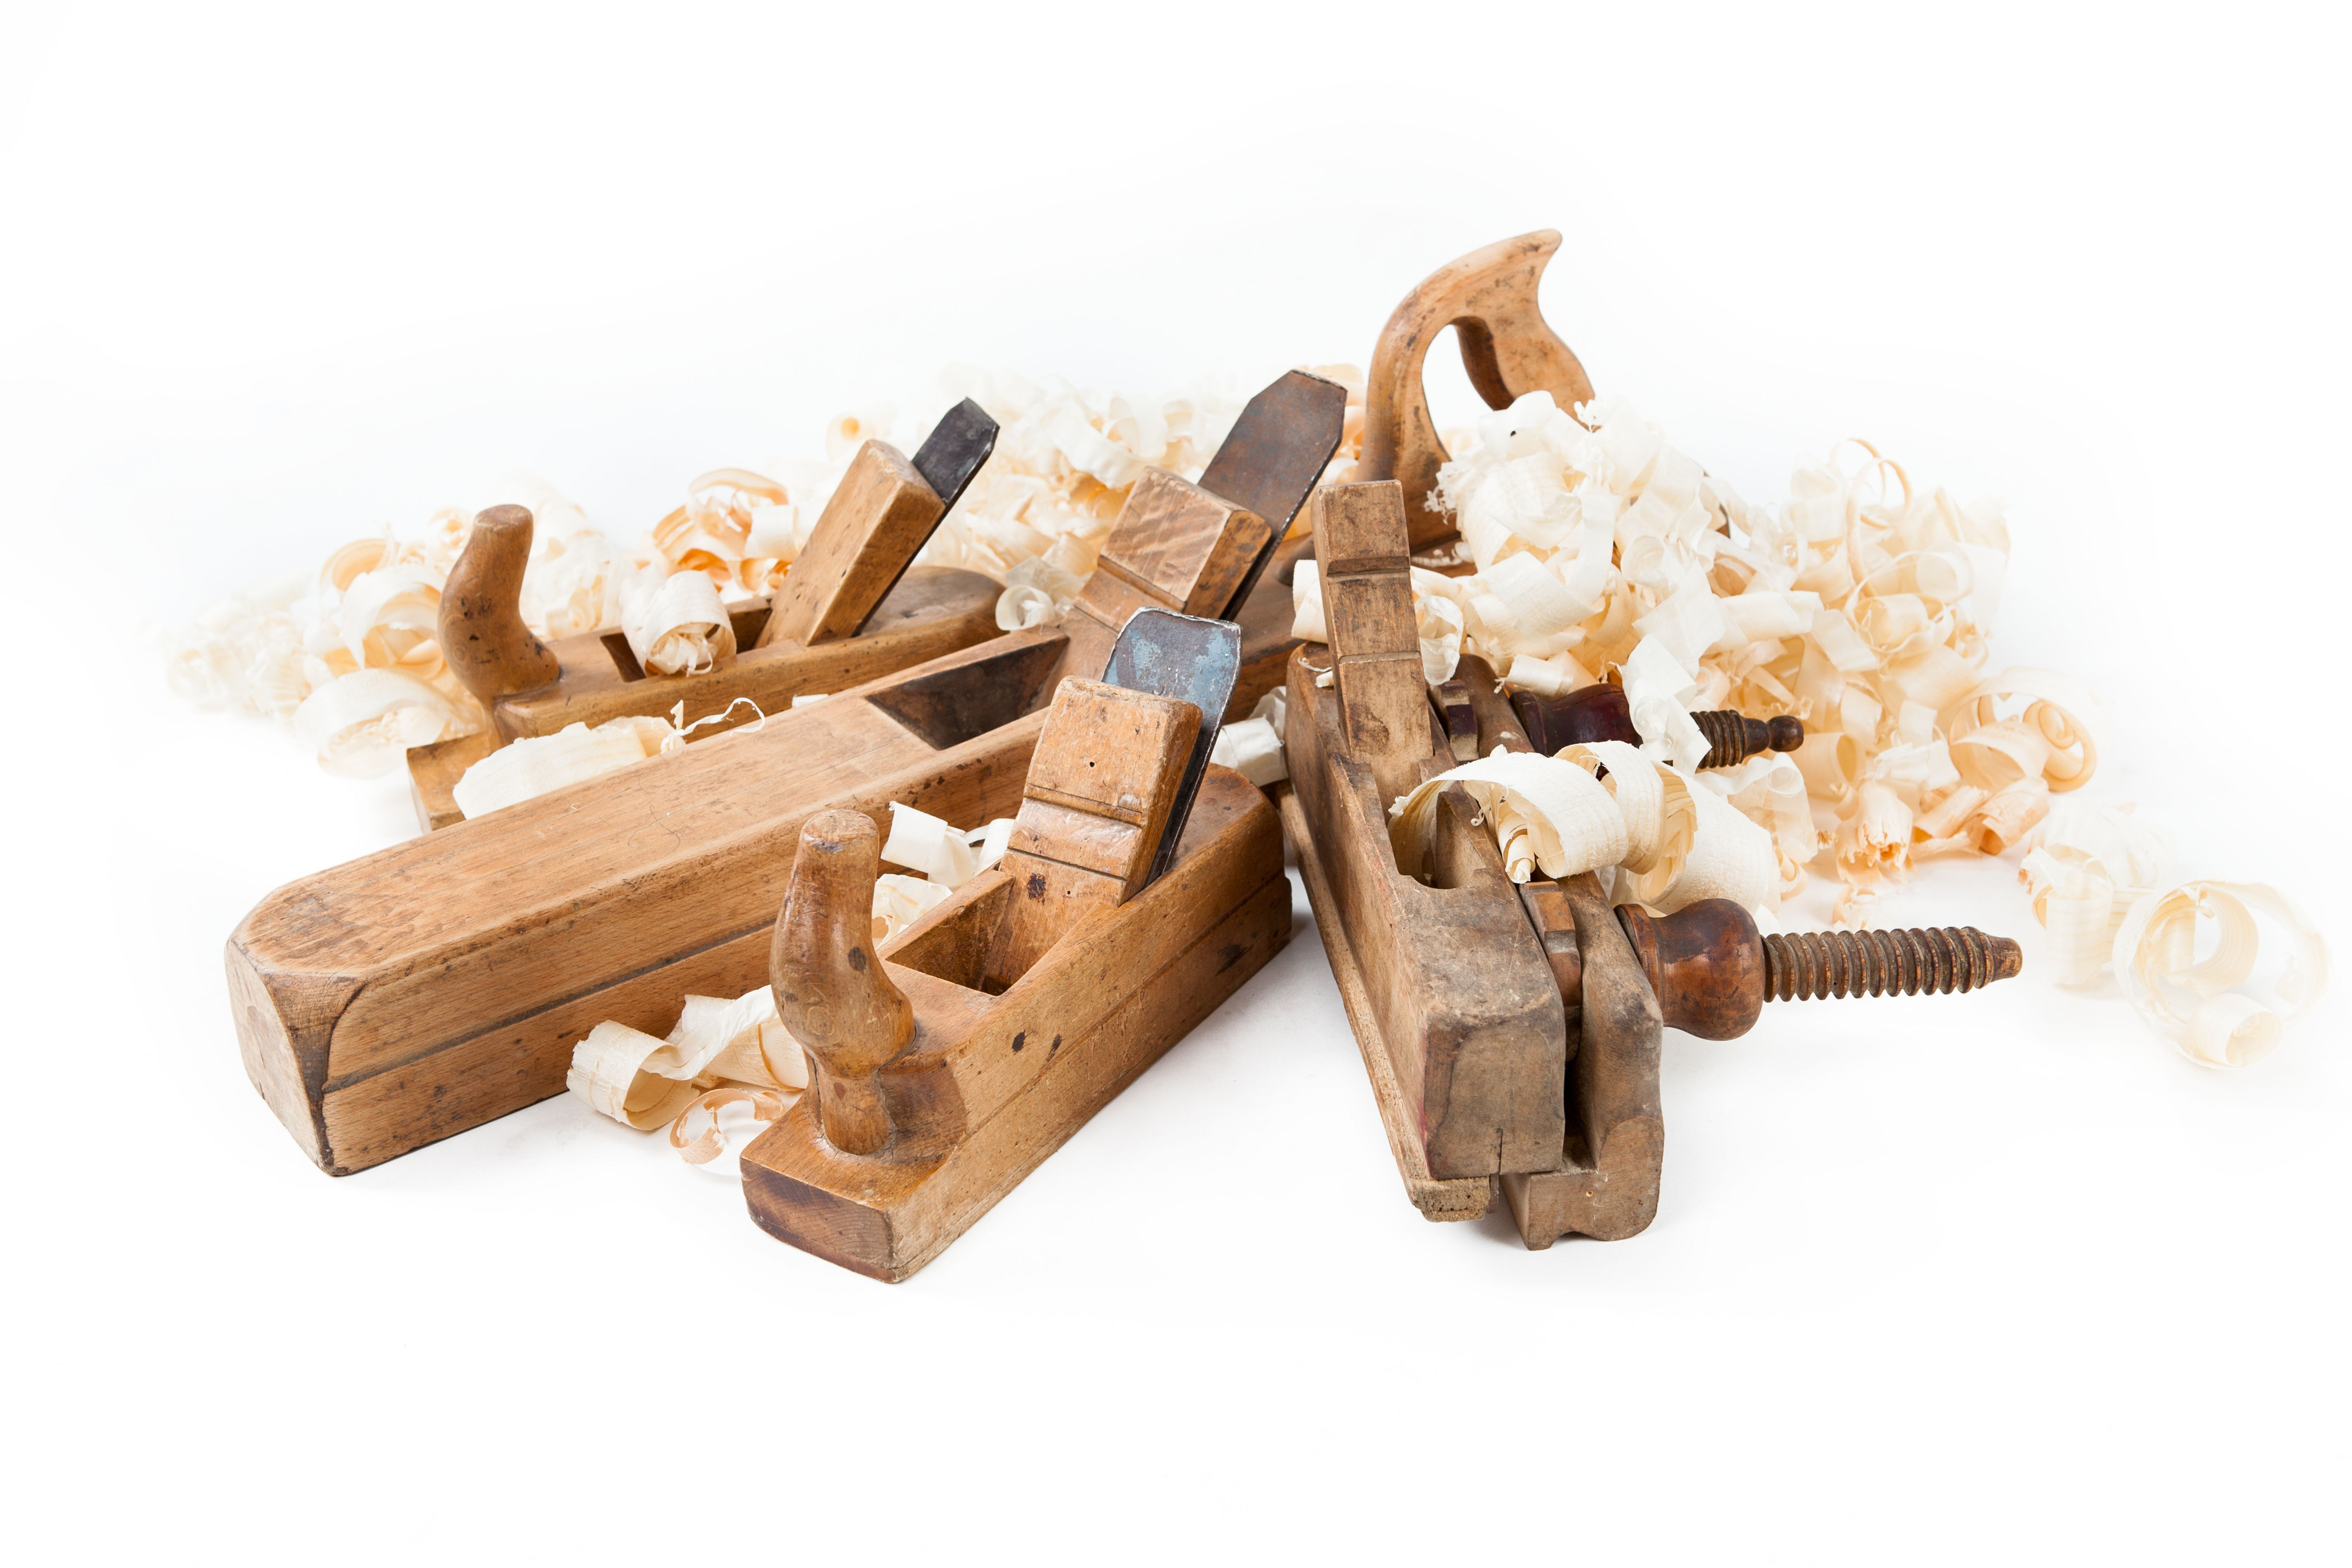 45 types of wood planers for your woodworking projects